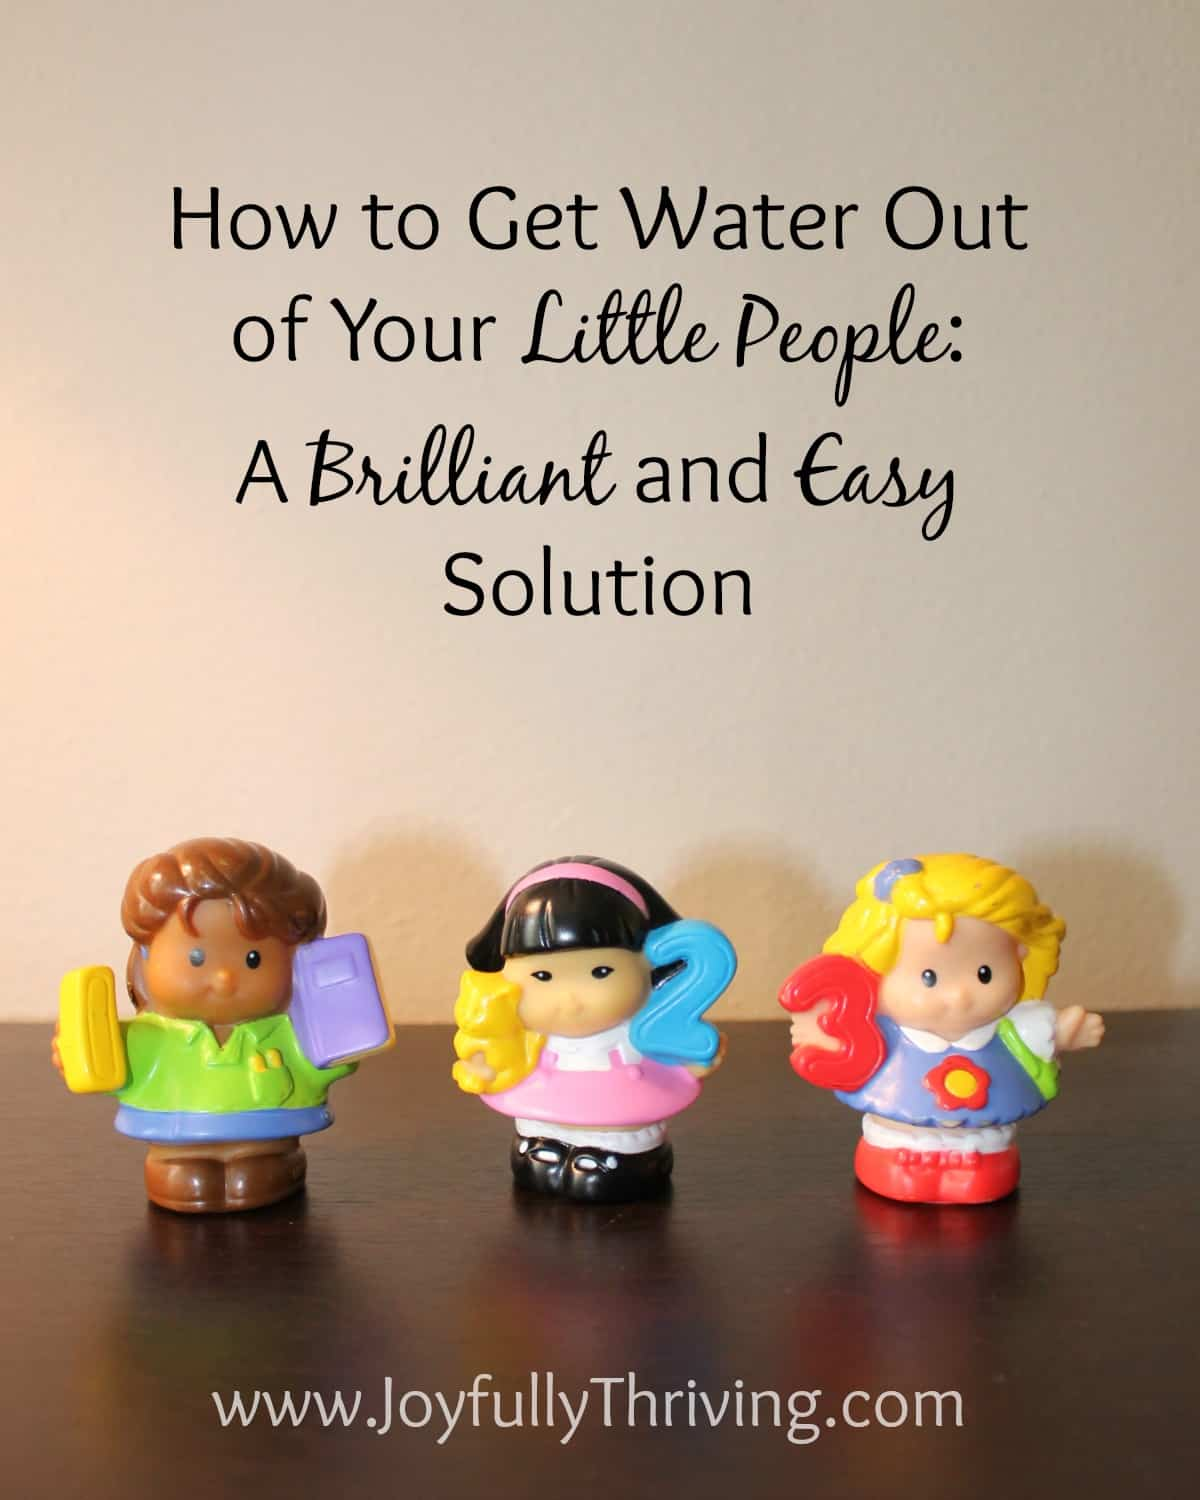 How to Get Water Out of Little People